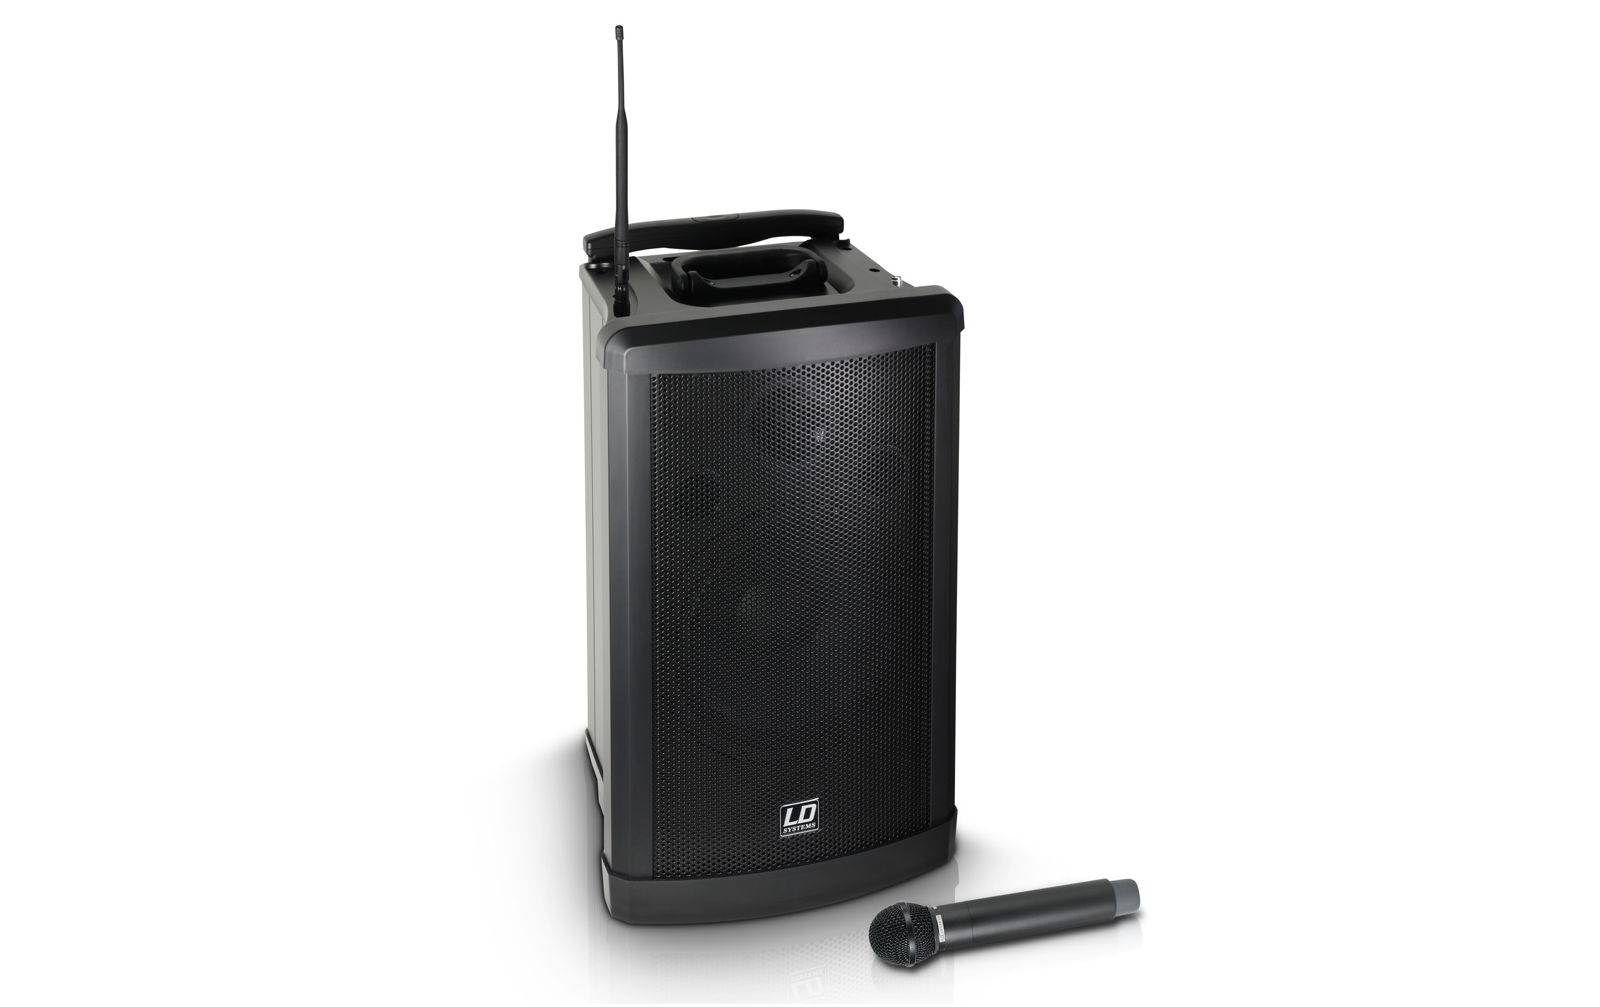 ld-systems-roadman-102-portables-sound-system-b5-frequenz-584-mhz-607-mhz